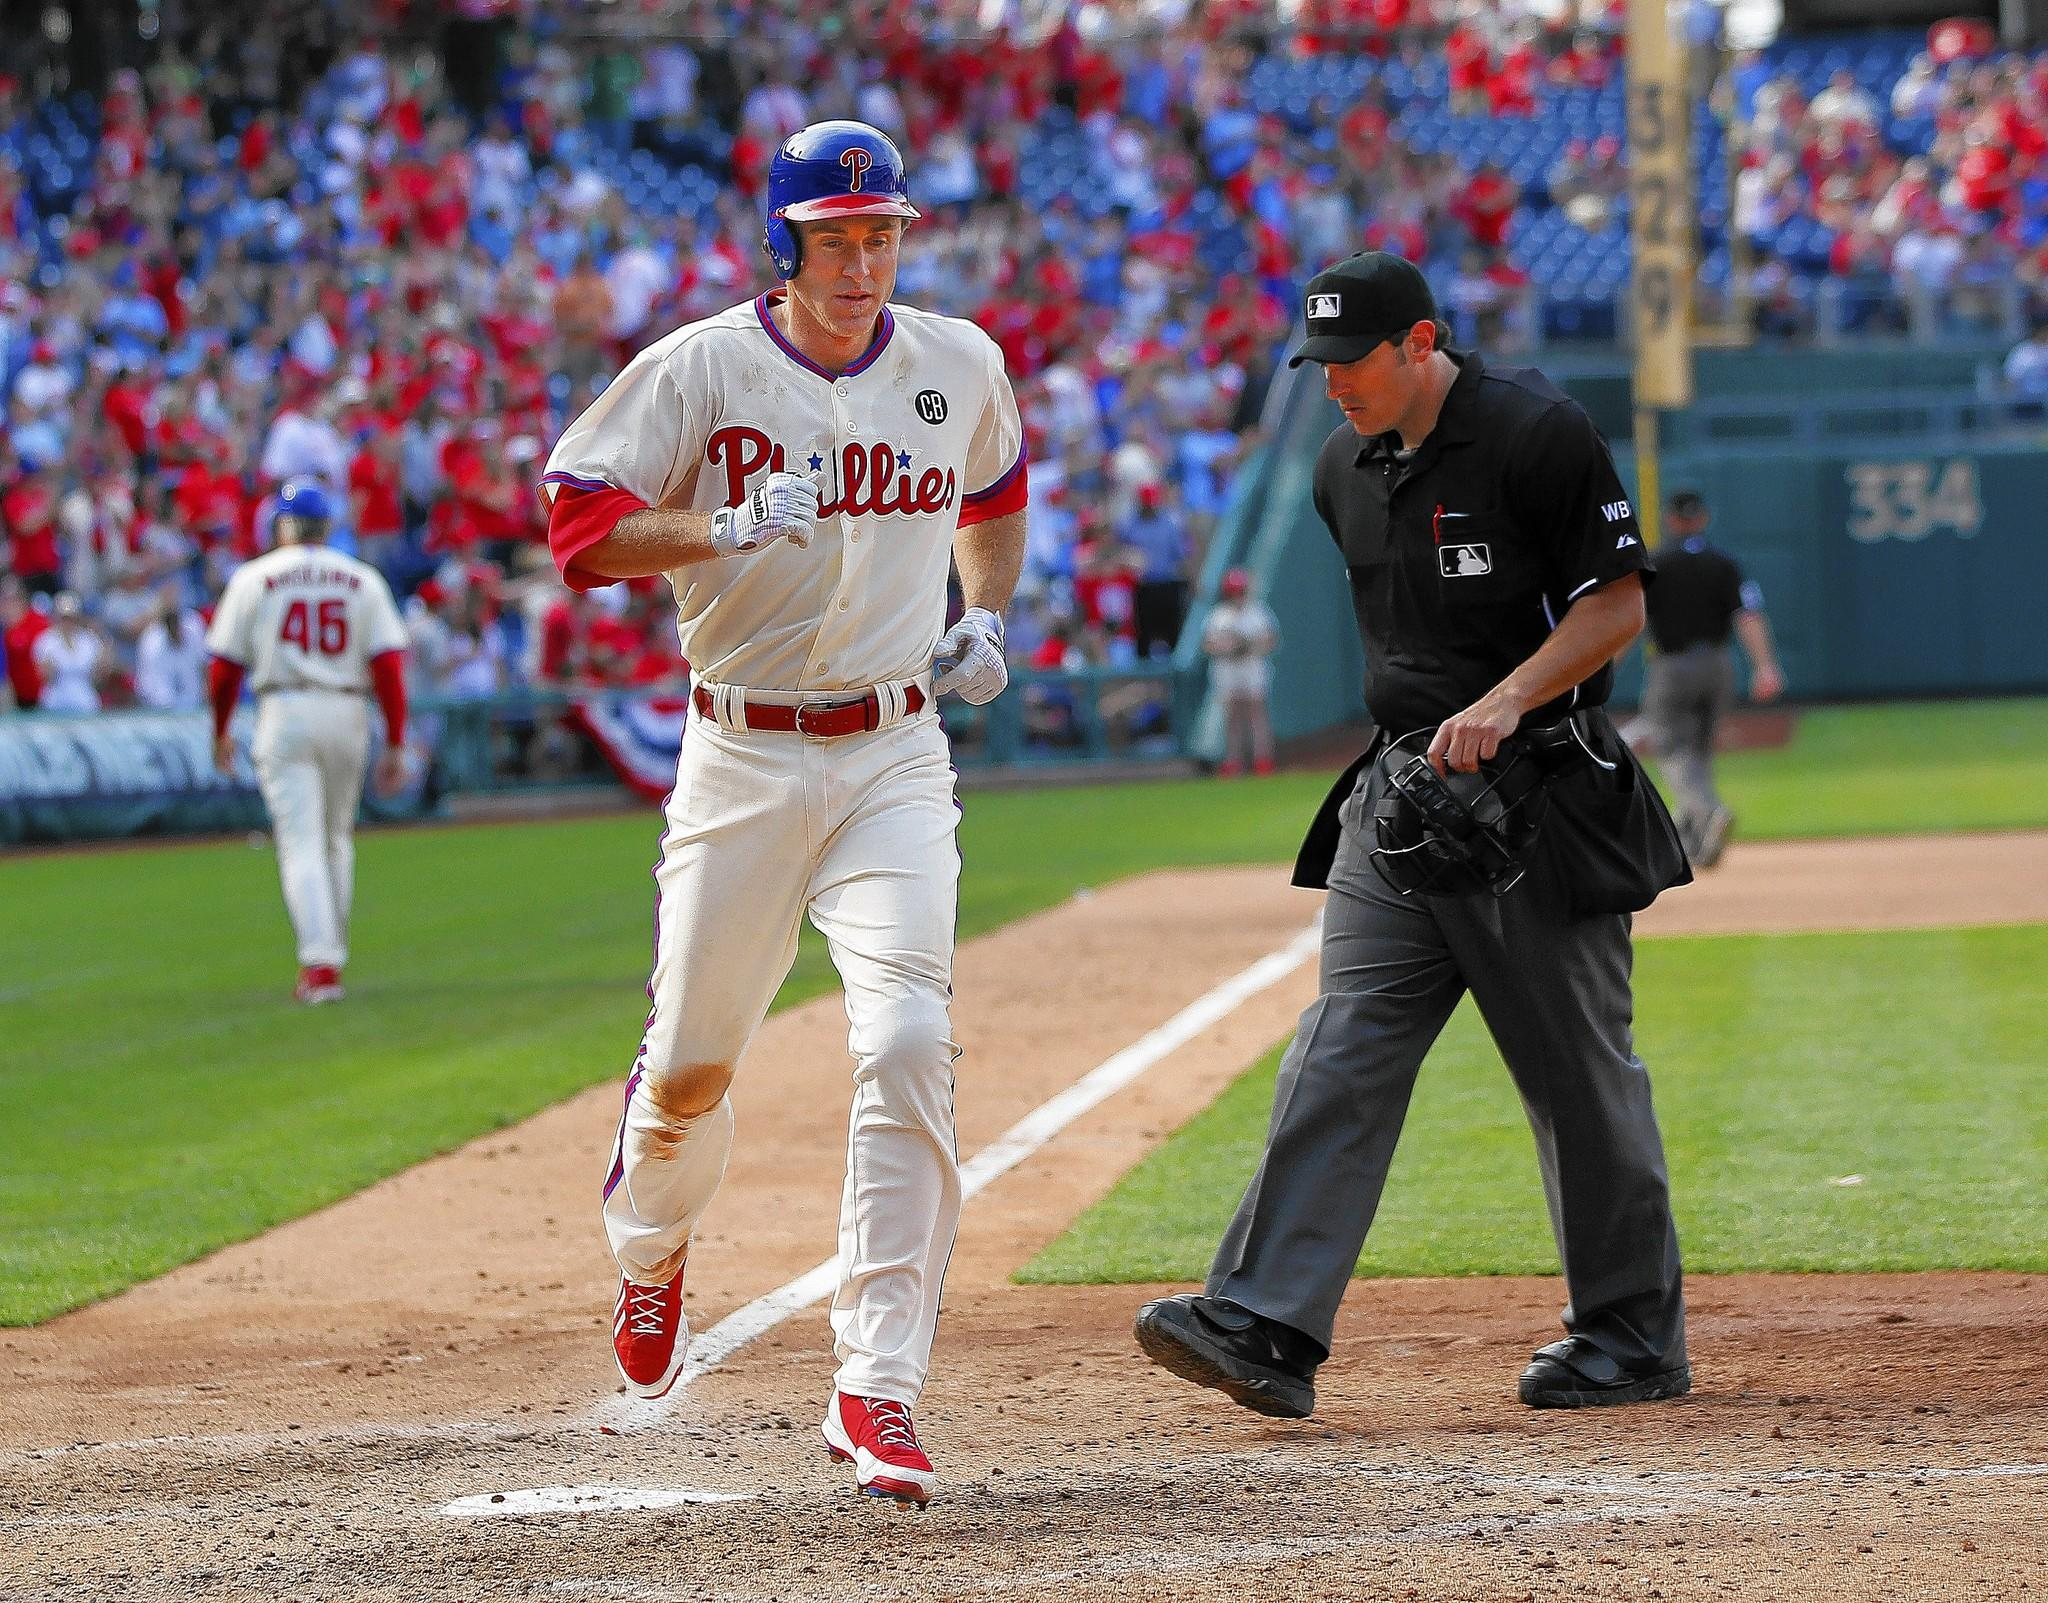 The Phillies' Chase Utley wasn't in the starting lineup on Monday after playing in 12 straight games.